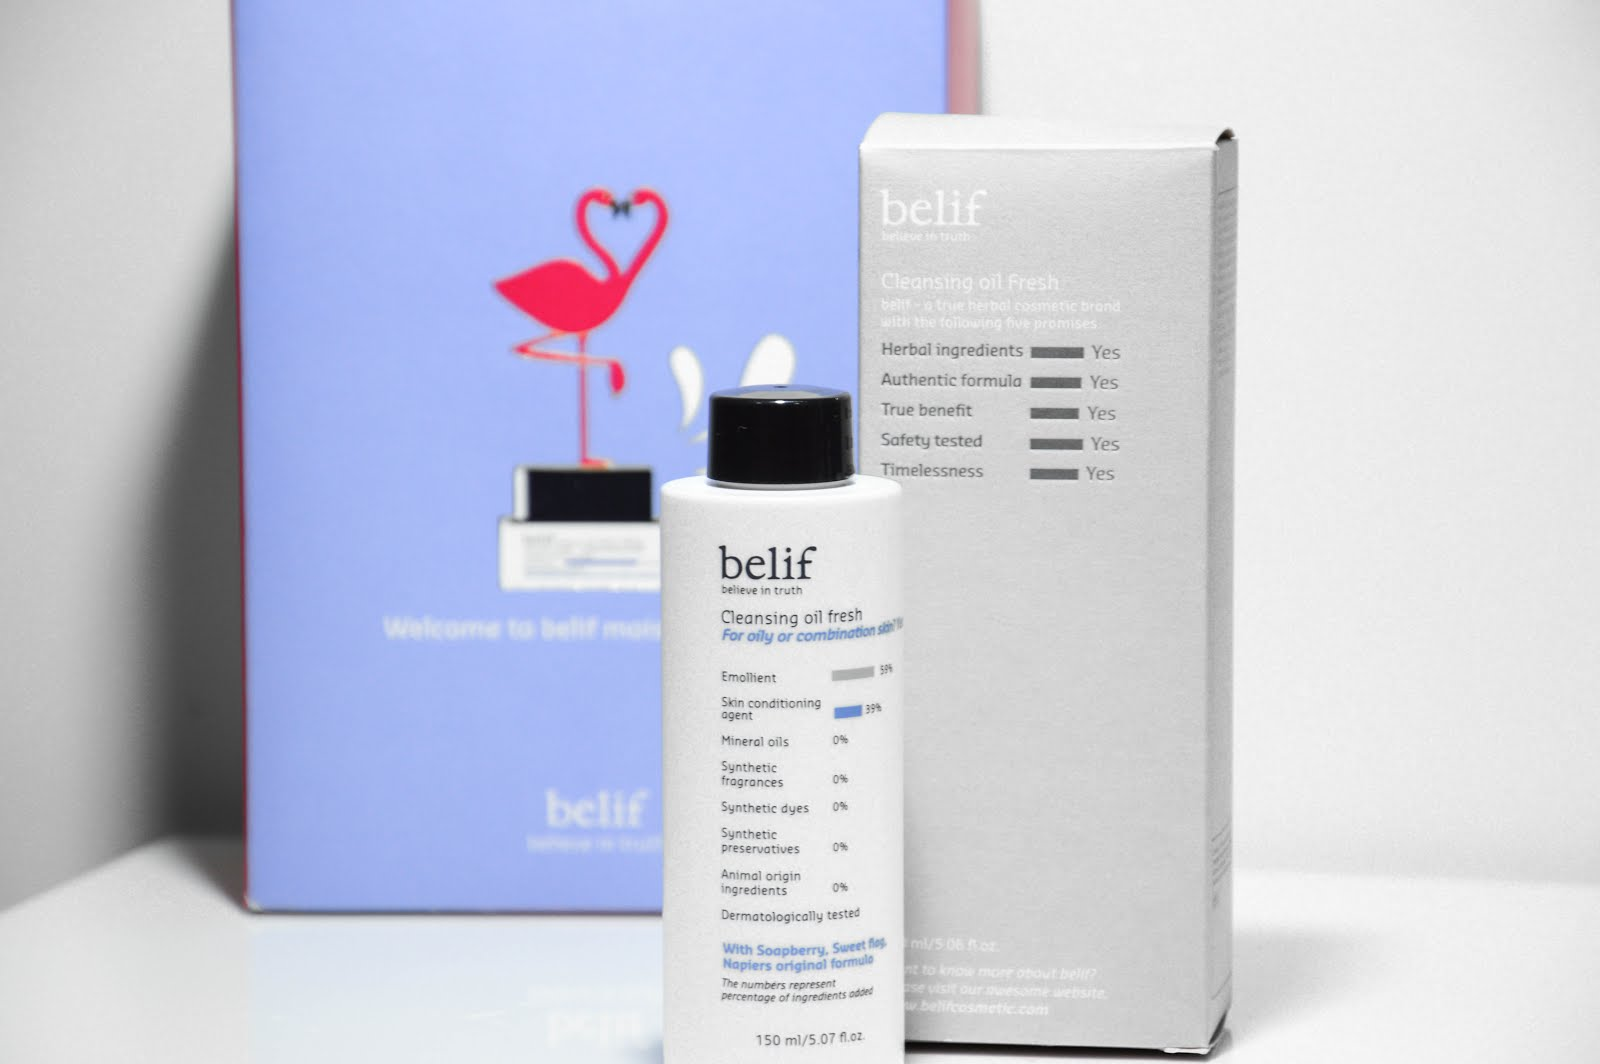 belif cleansing oil fresh review